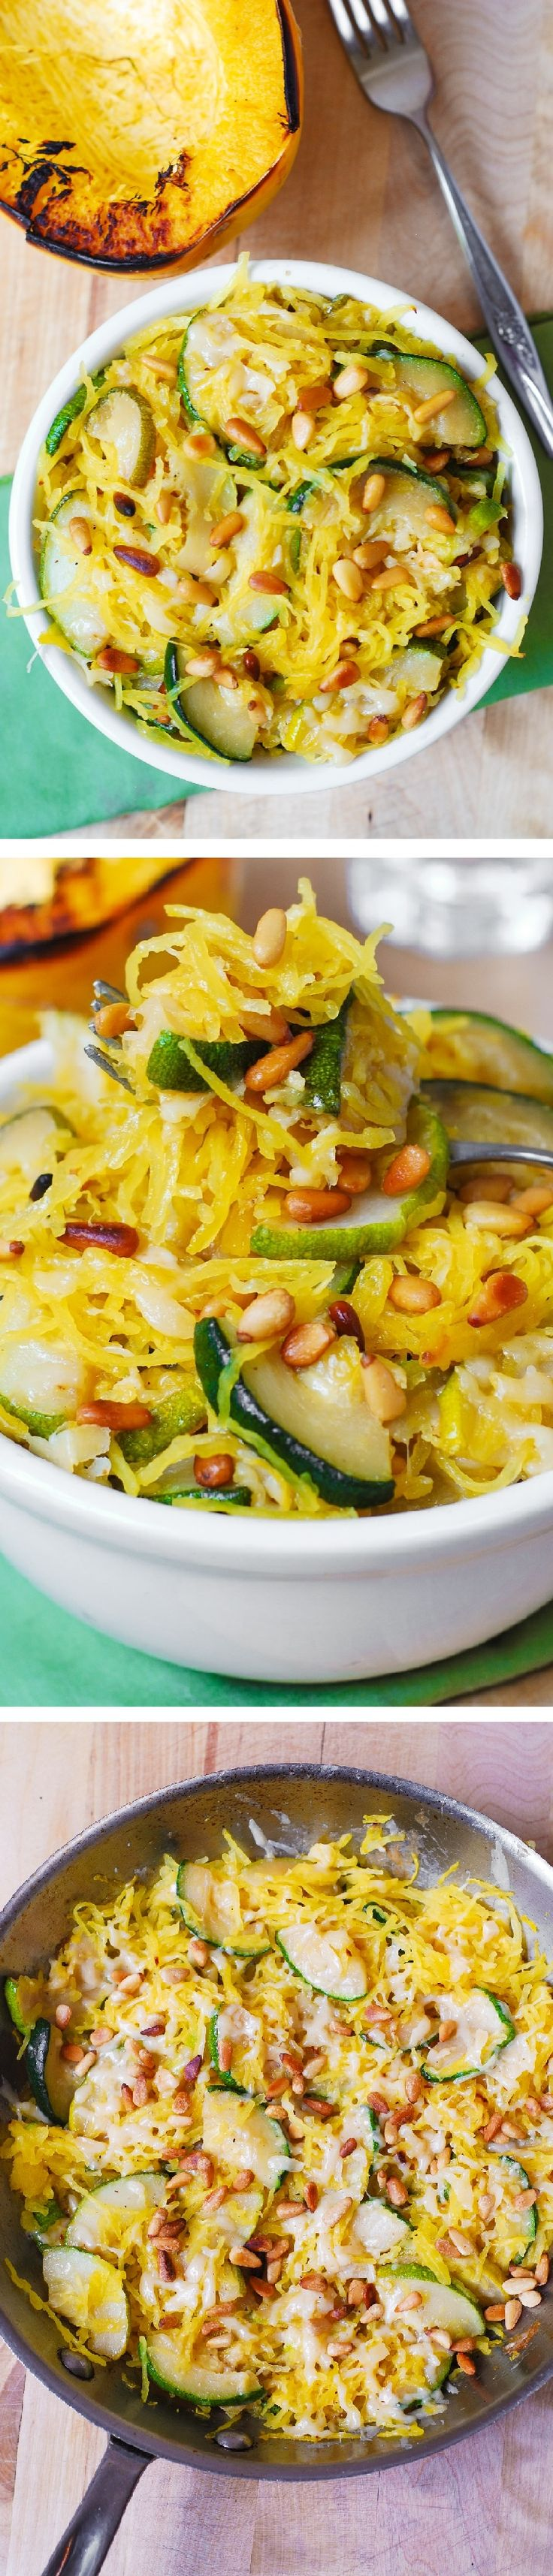 Zucchini cooked with garlic in olive oil, mixed with spaghetti squash, topped with melted, freshly grated, Parmesan cheese AND then sprinkled with toasted pine nuts. Delicious, healthy, gluten free, v (Nut Squash Recipes)